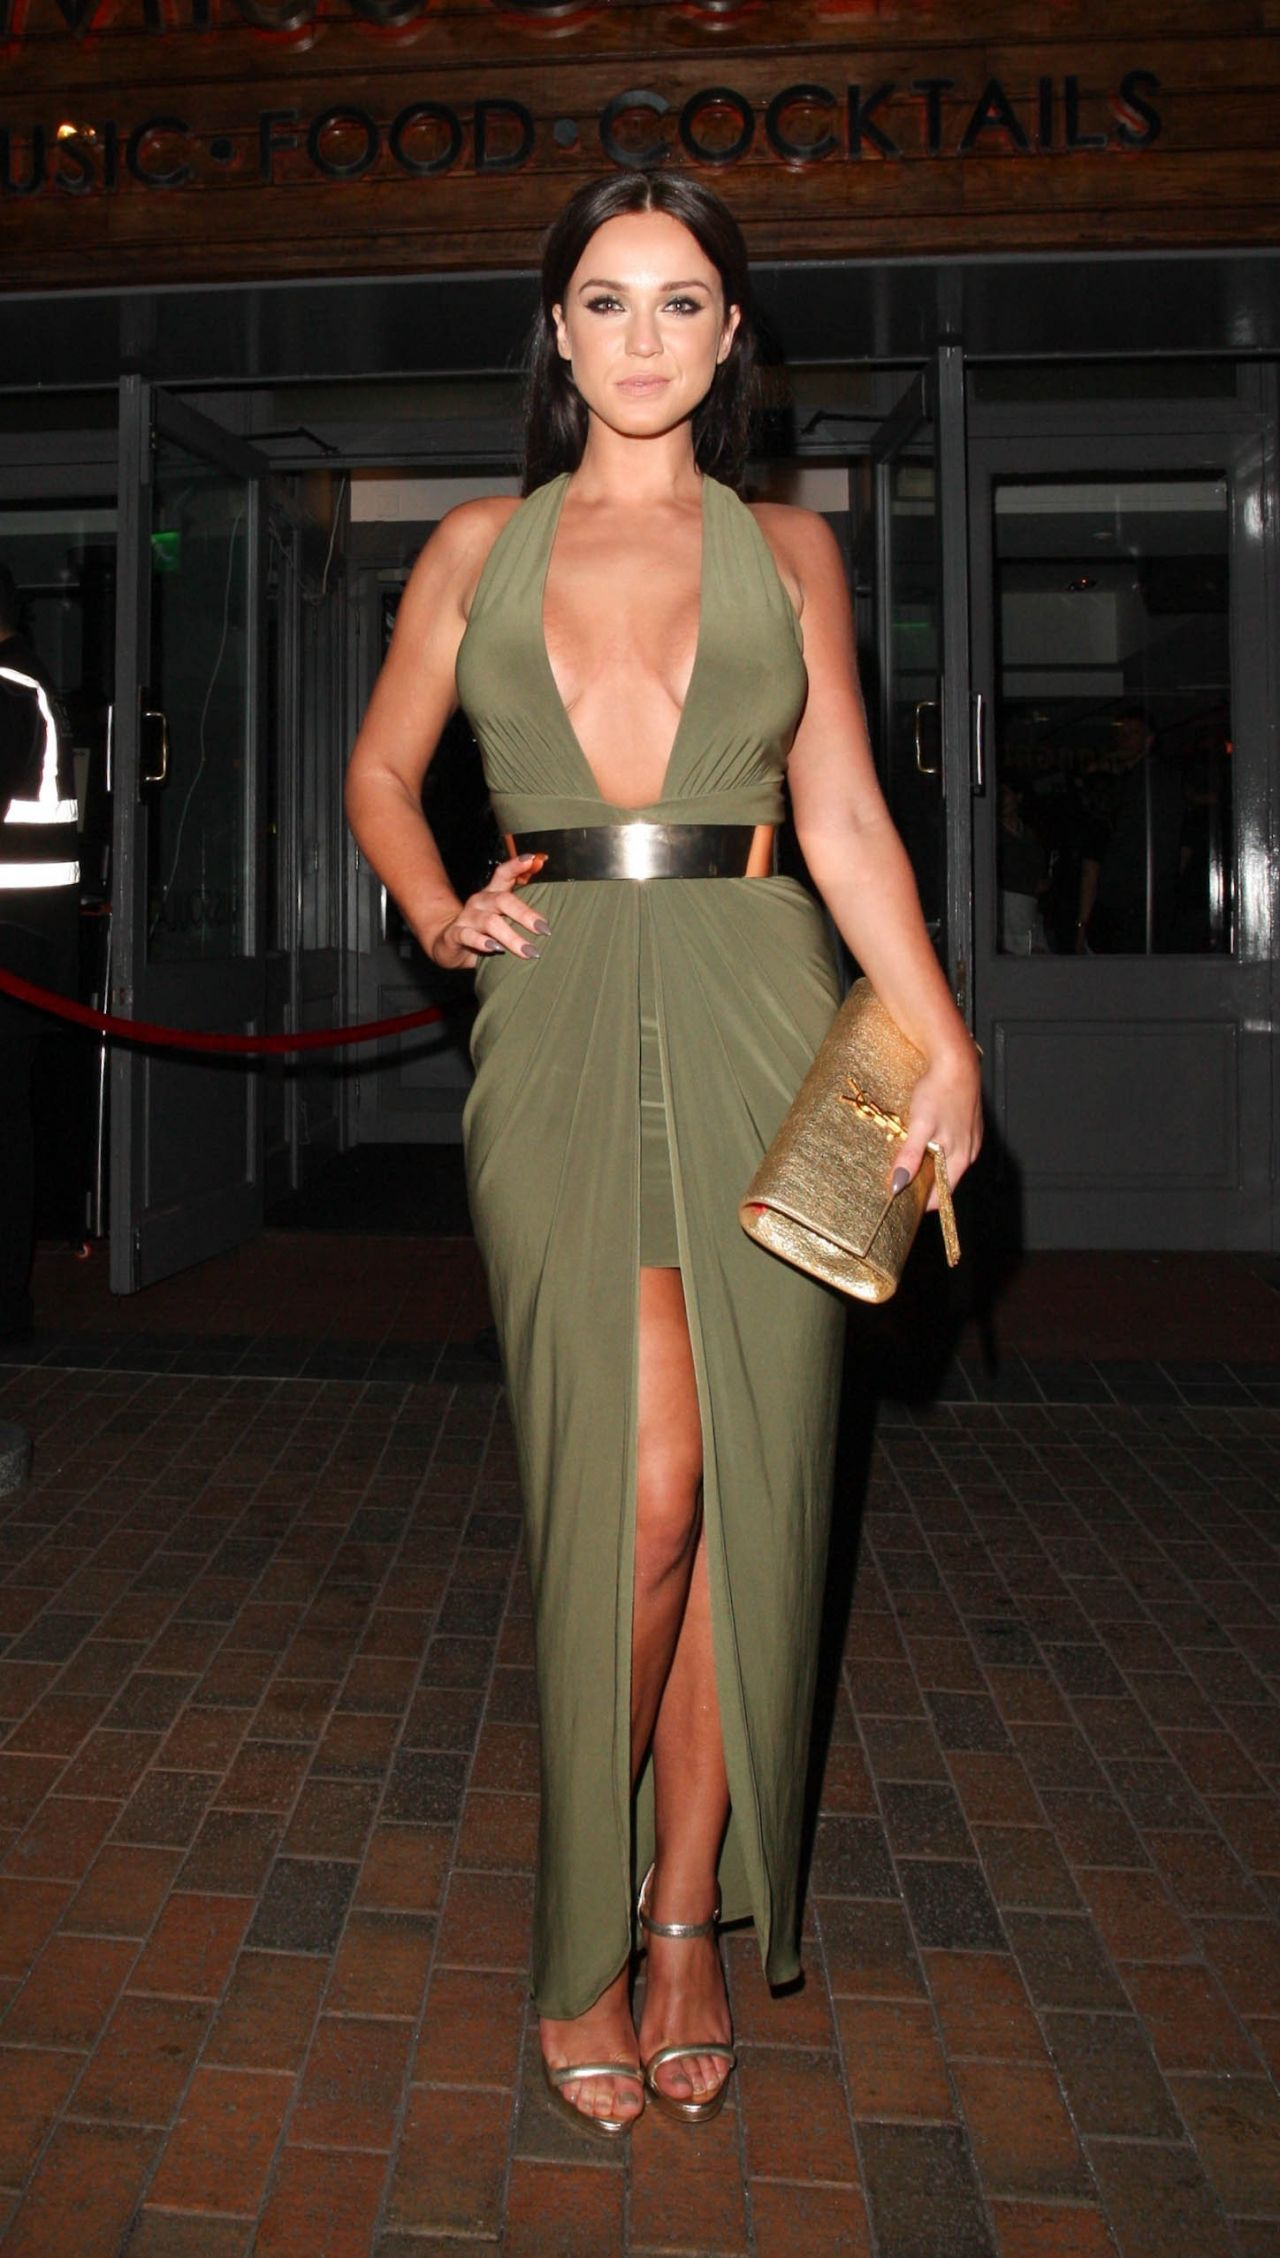 Vicky Pattison Night Out Style - Leaving The Missoula -7821